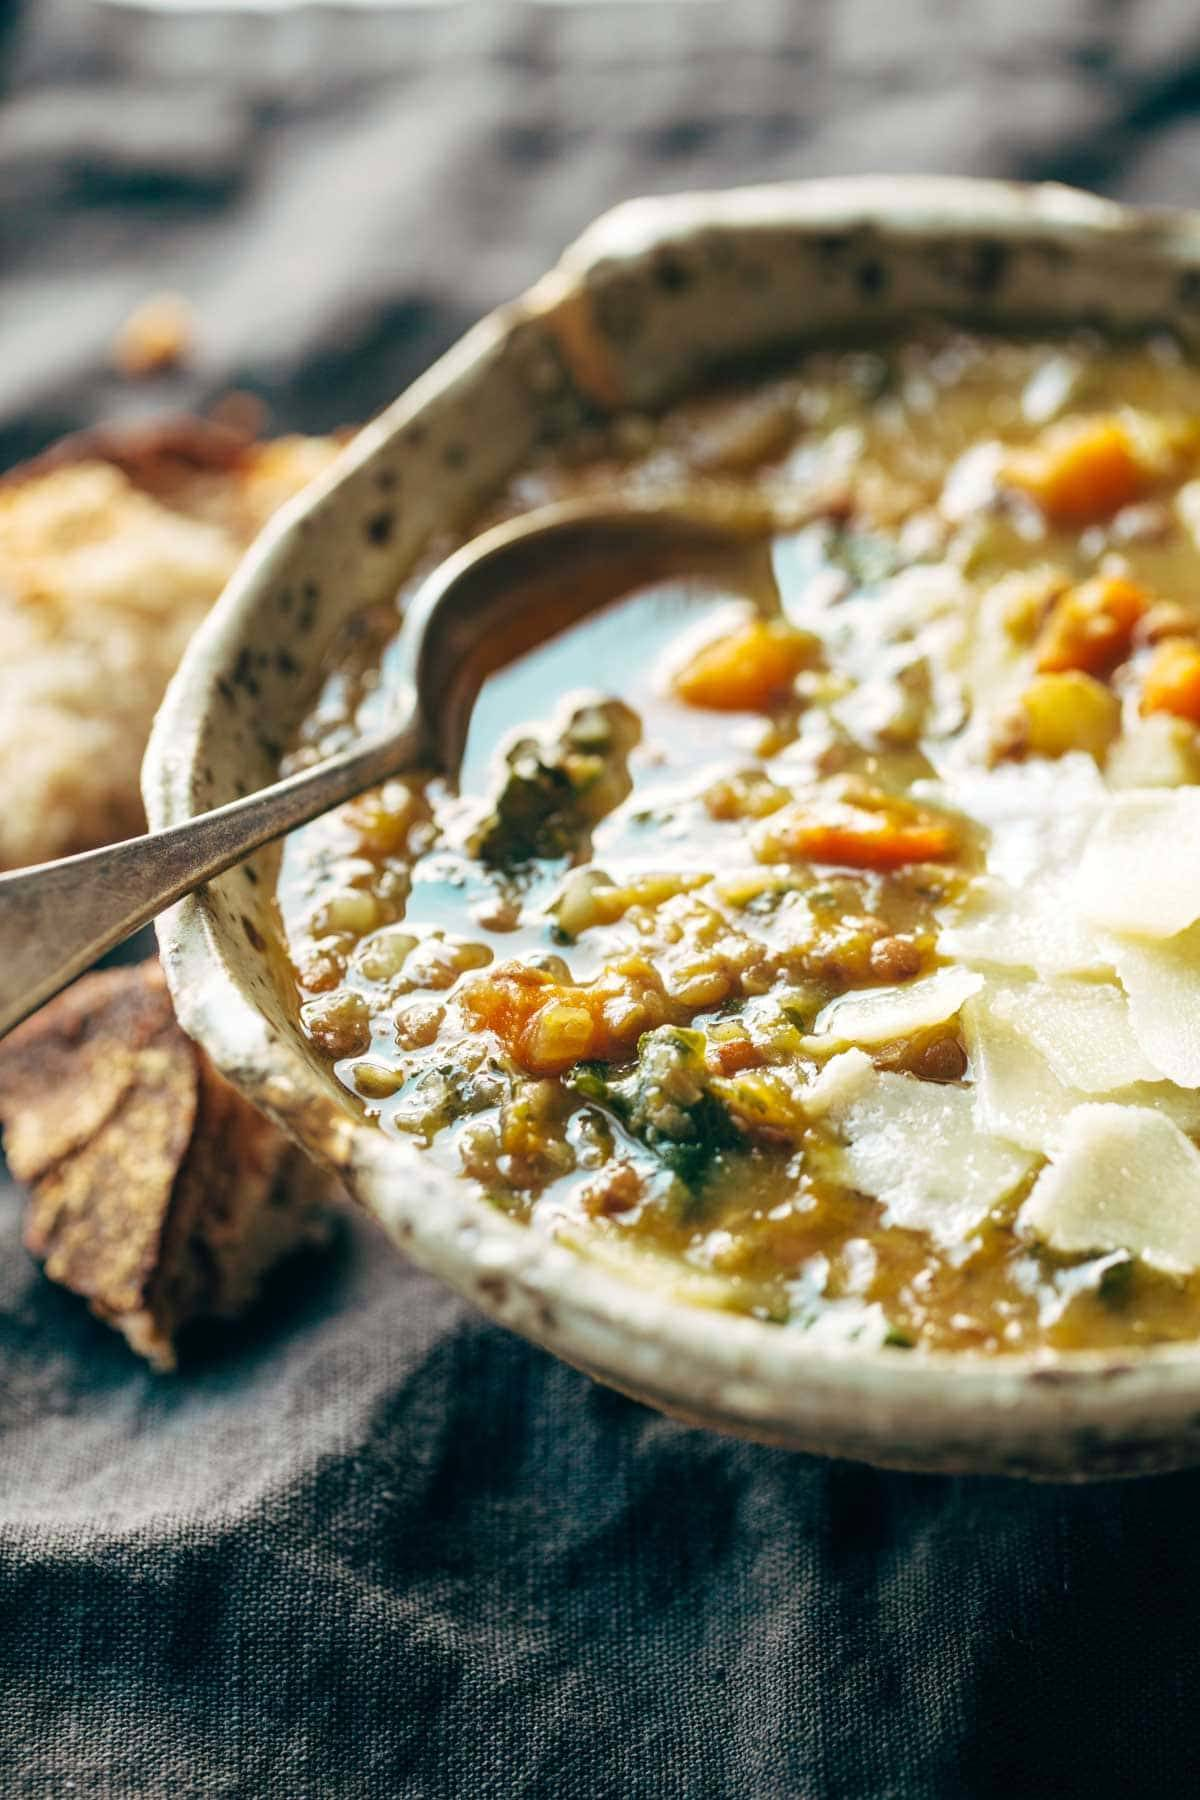 Detox Crockpot Lentil Soup - a nourishing and easy soup recipe made with onions, garlic, carrots, kale, olive oil, squash, and lentils. Vegan / vegetarian / gluten free and SUPER delicious!   pinchofyum.com